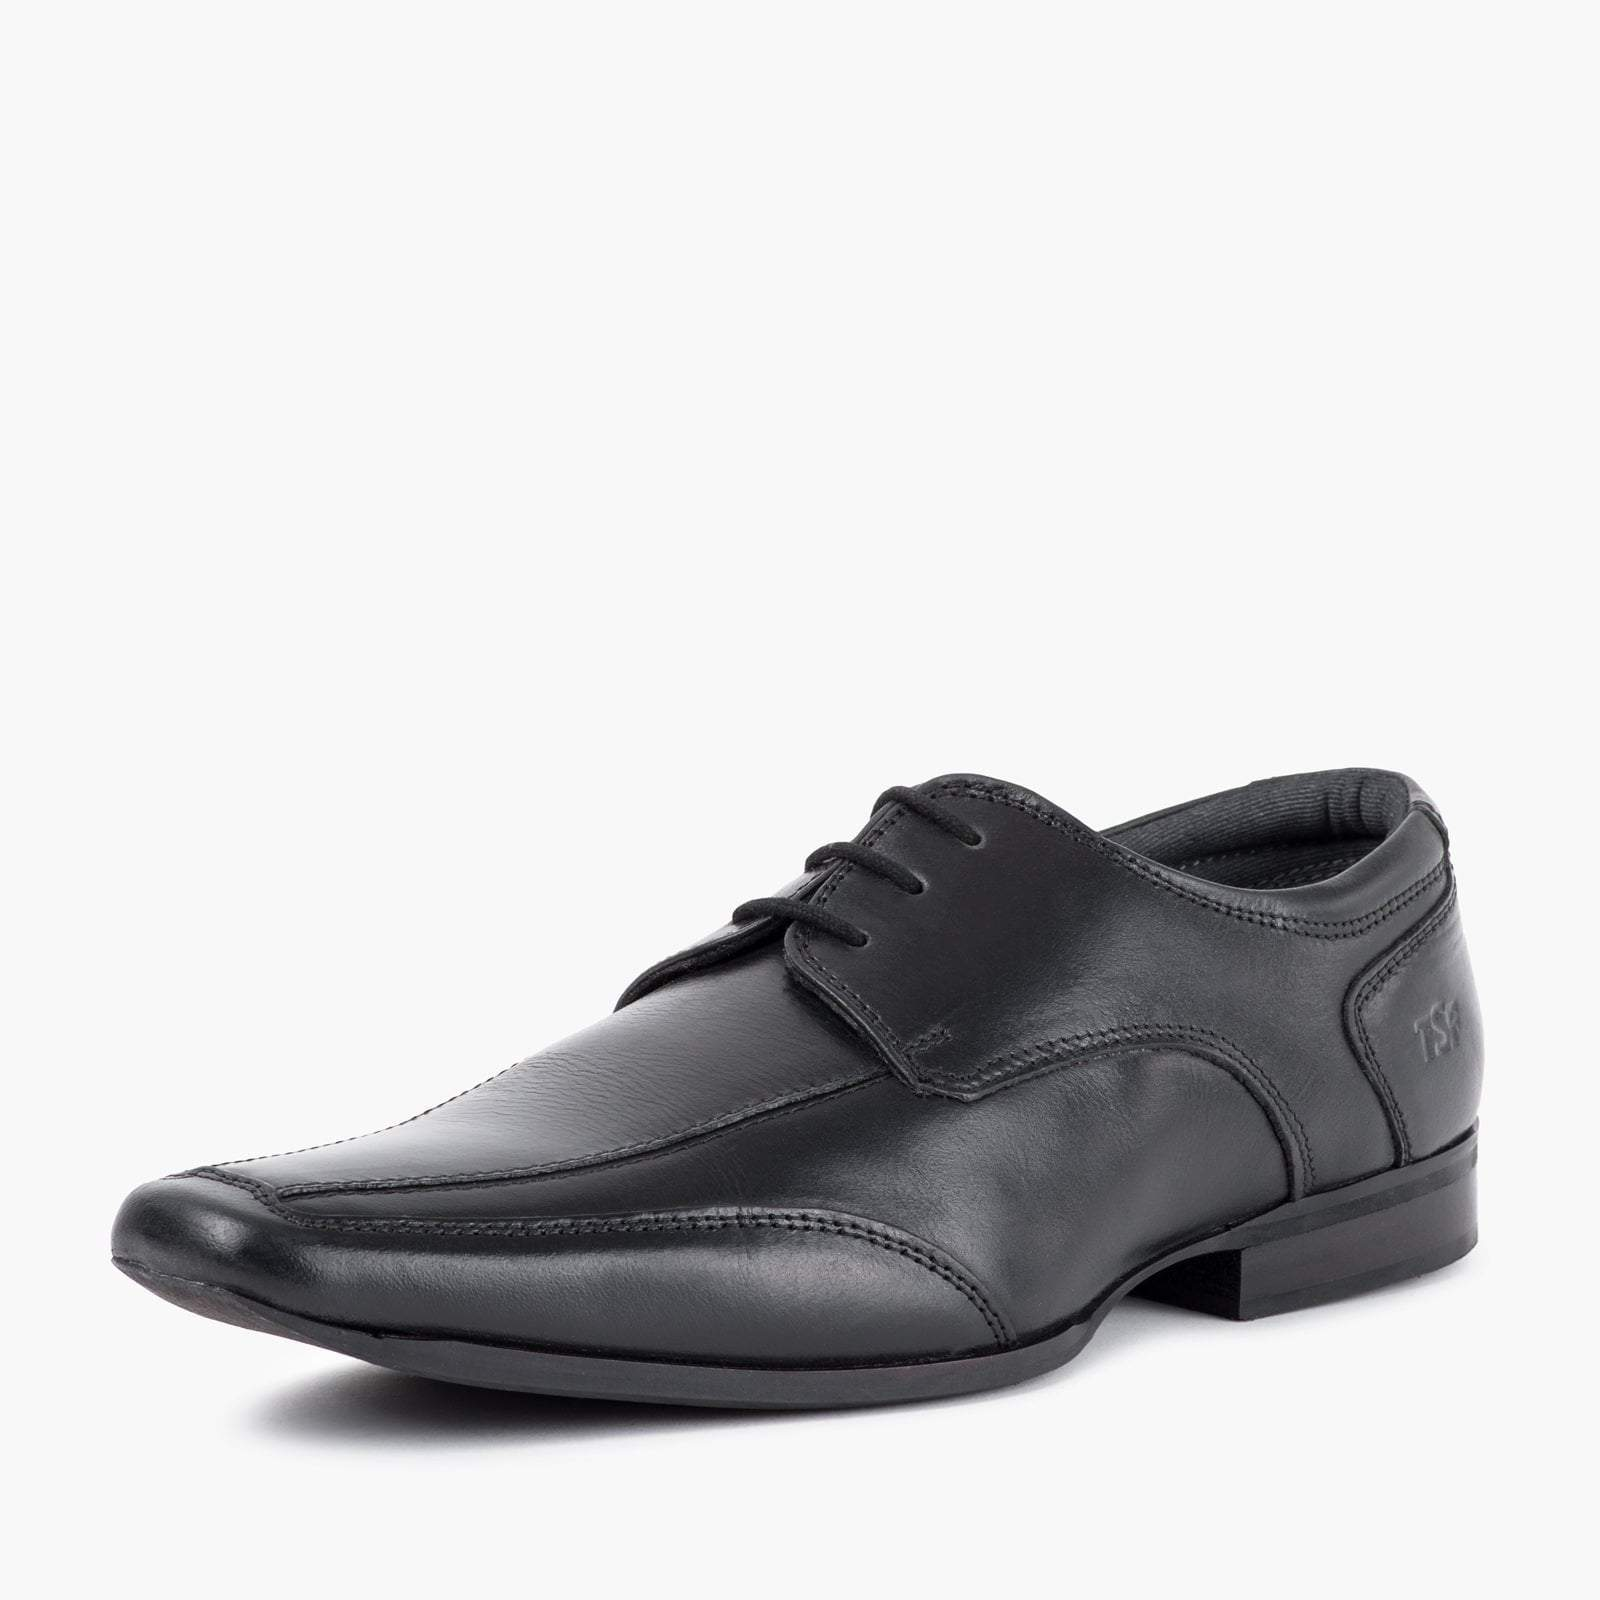 Redfoot Shoes Footwear UK 6 / EURO 39 / US 7 / Black / Leather MENS BLACK CHISELLED TOE DERBY